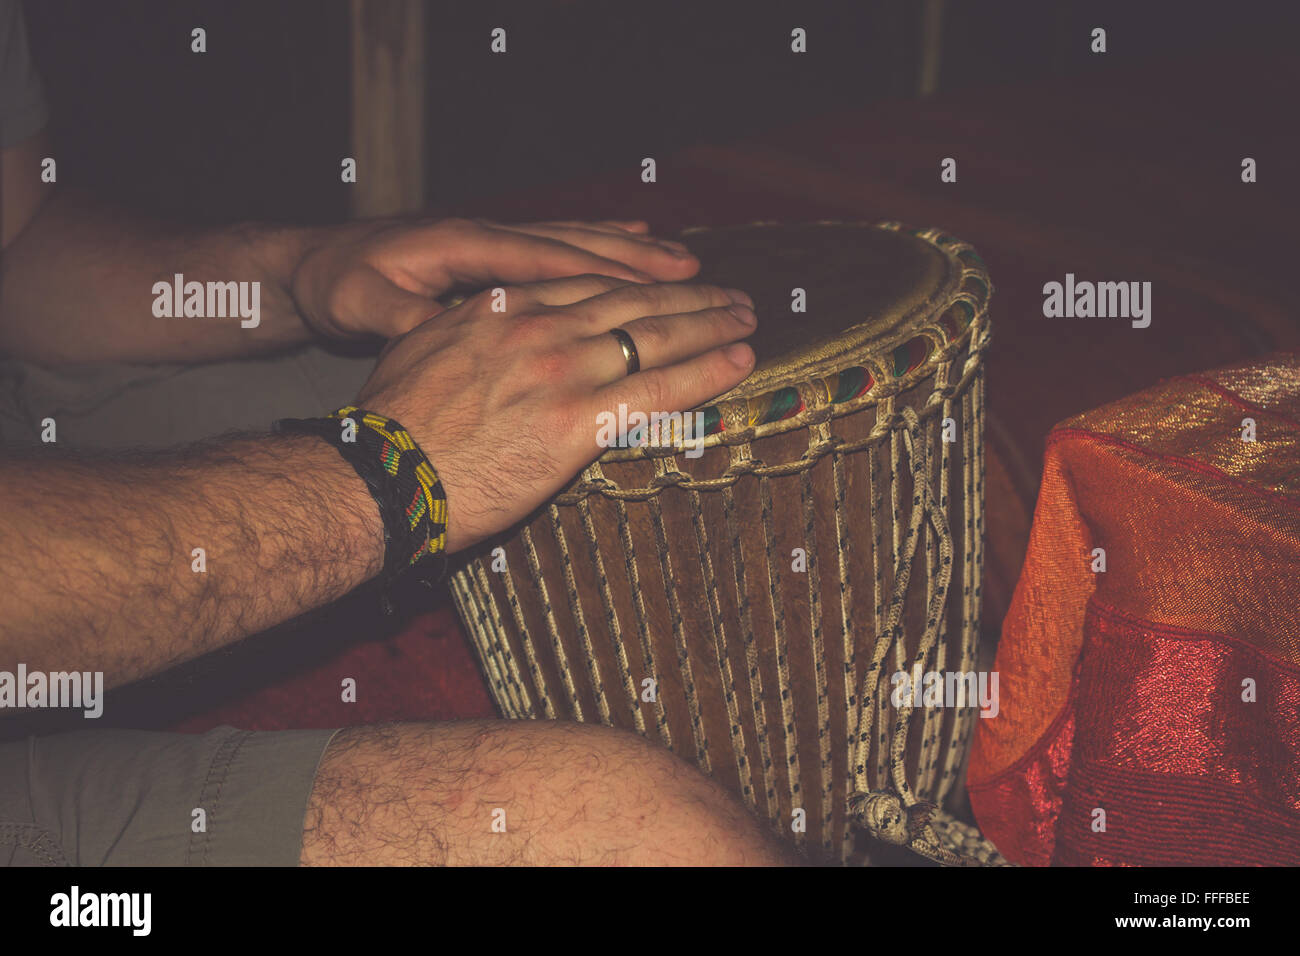 The African traditional drum separately on a white background - Stock Image